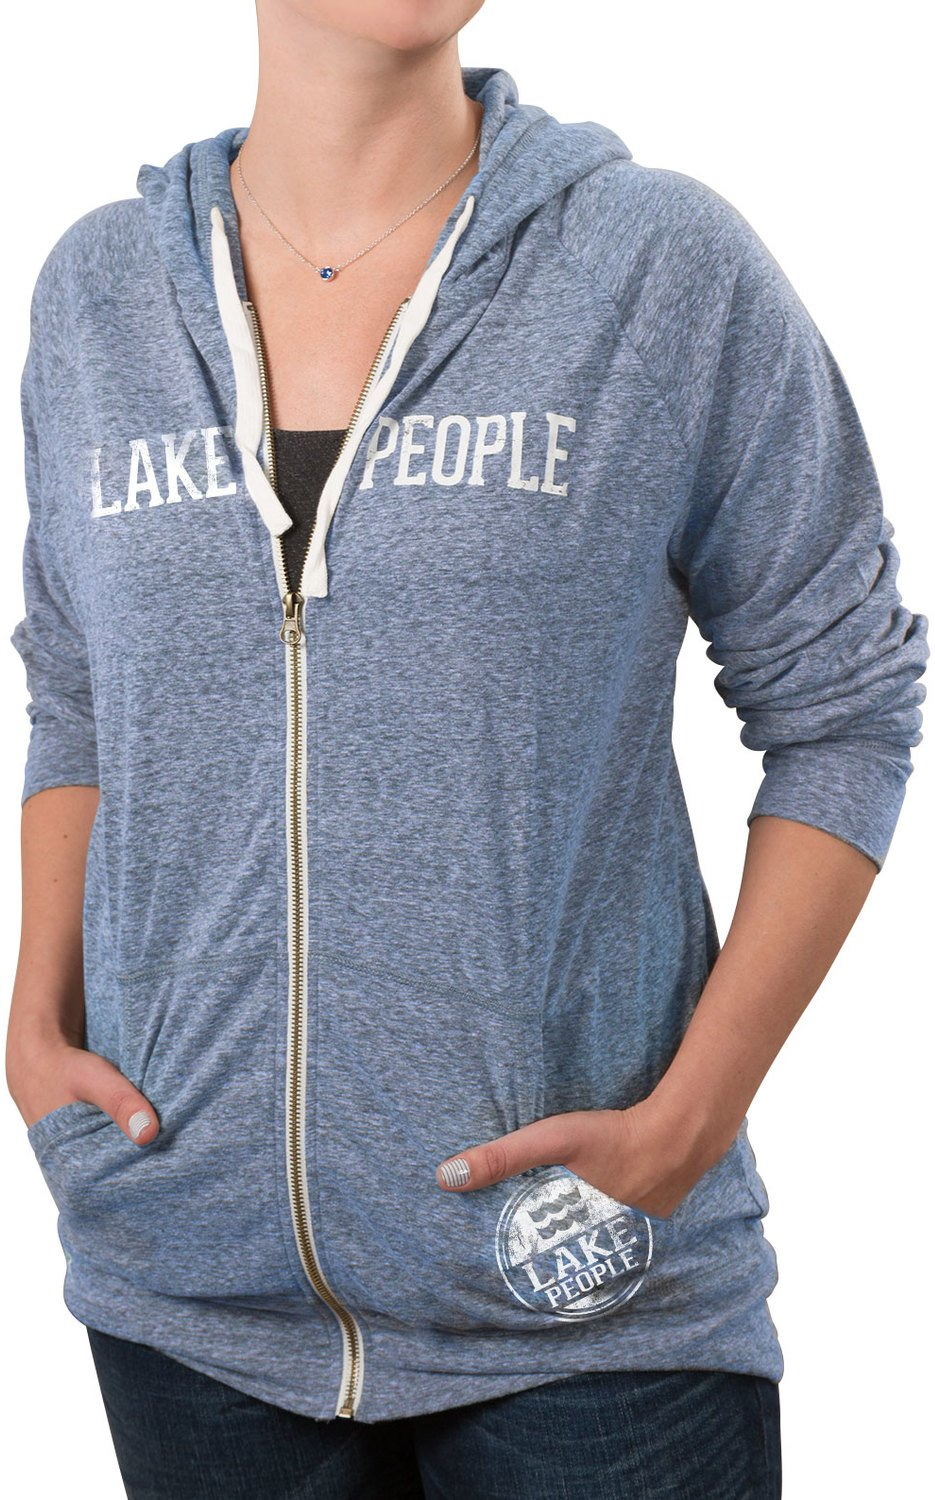 We People Zip up, Blue, XL